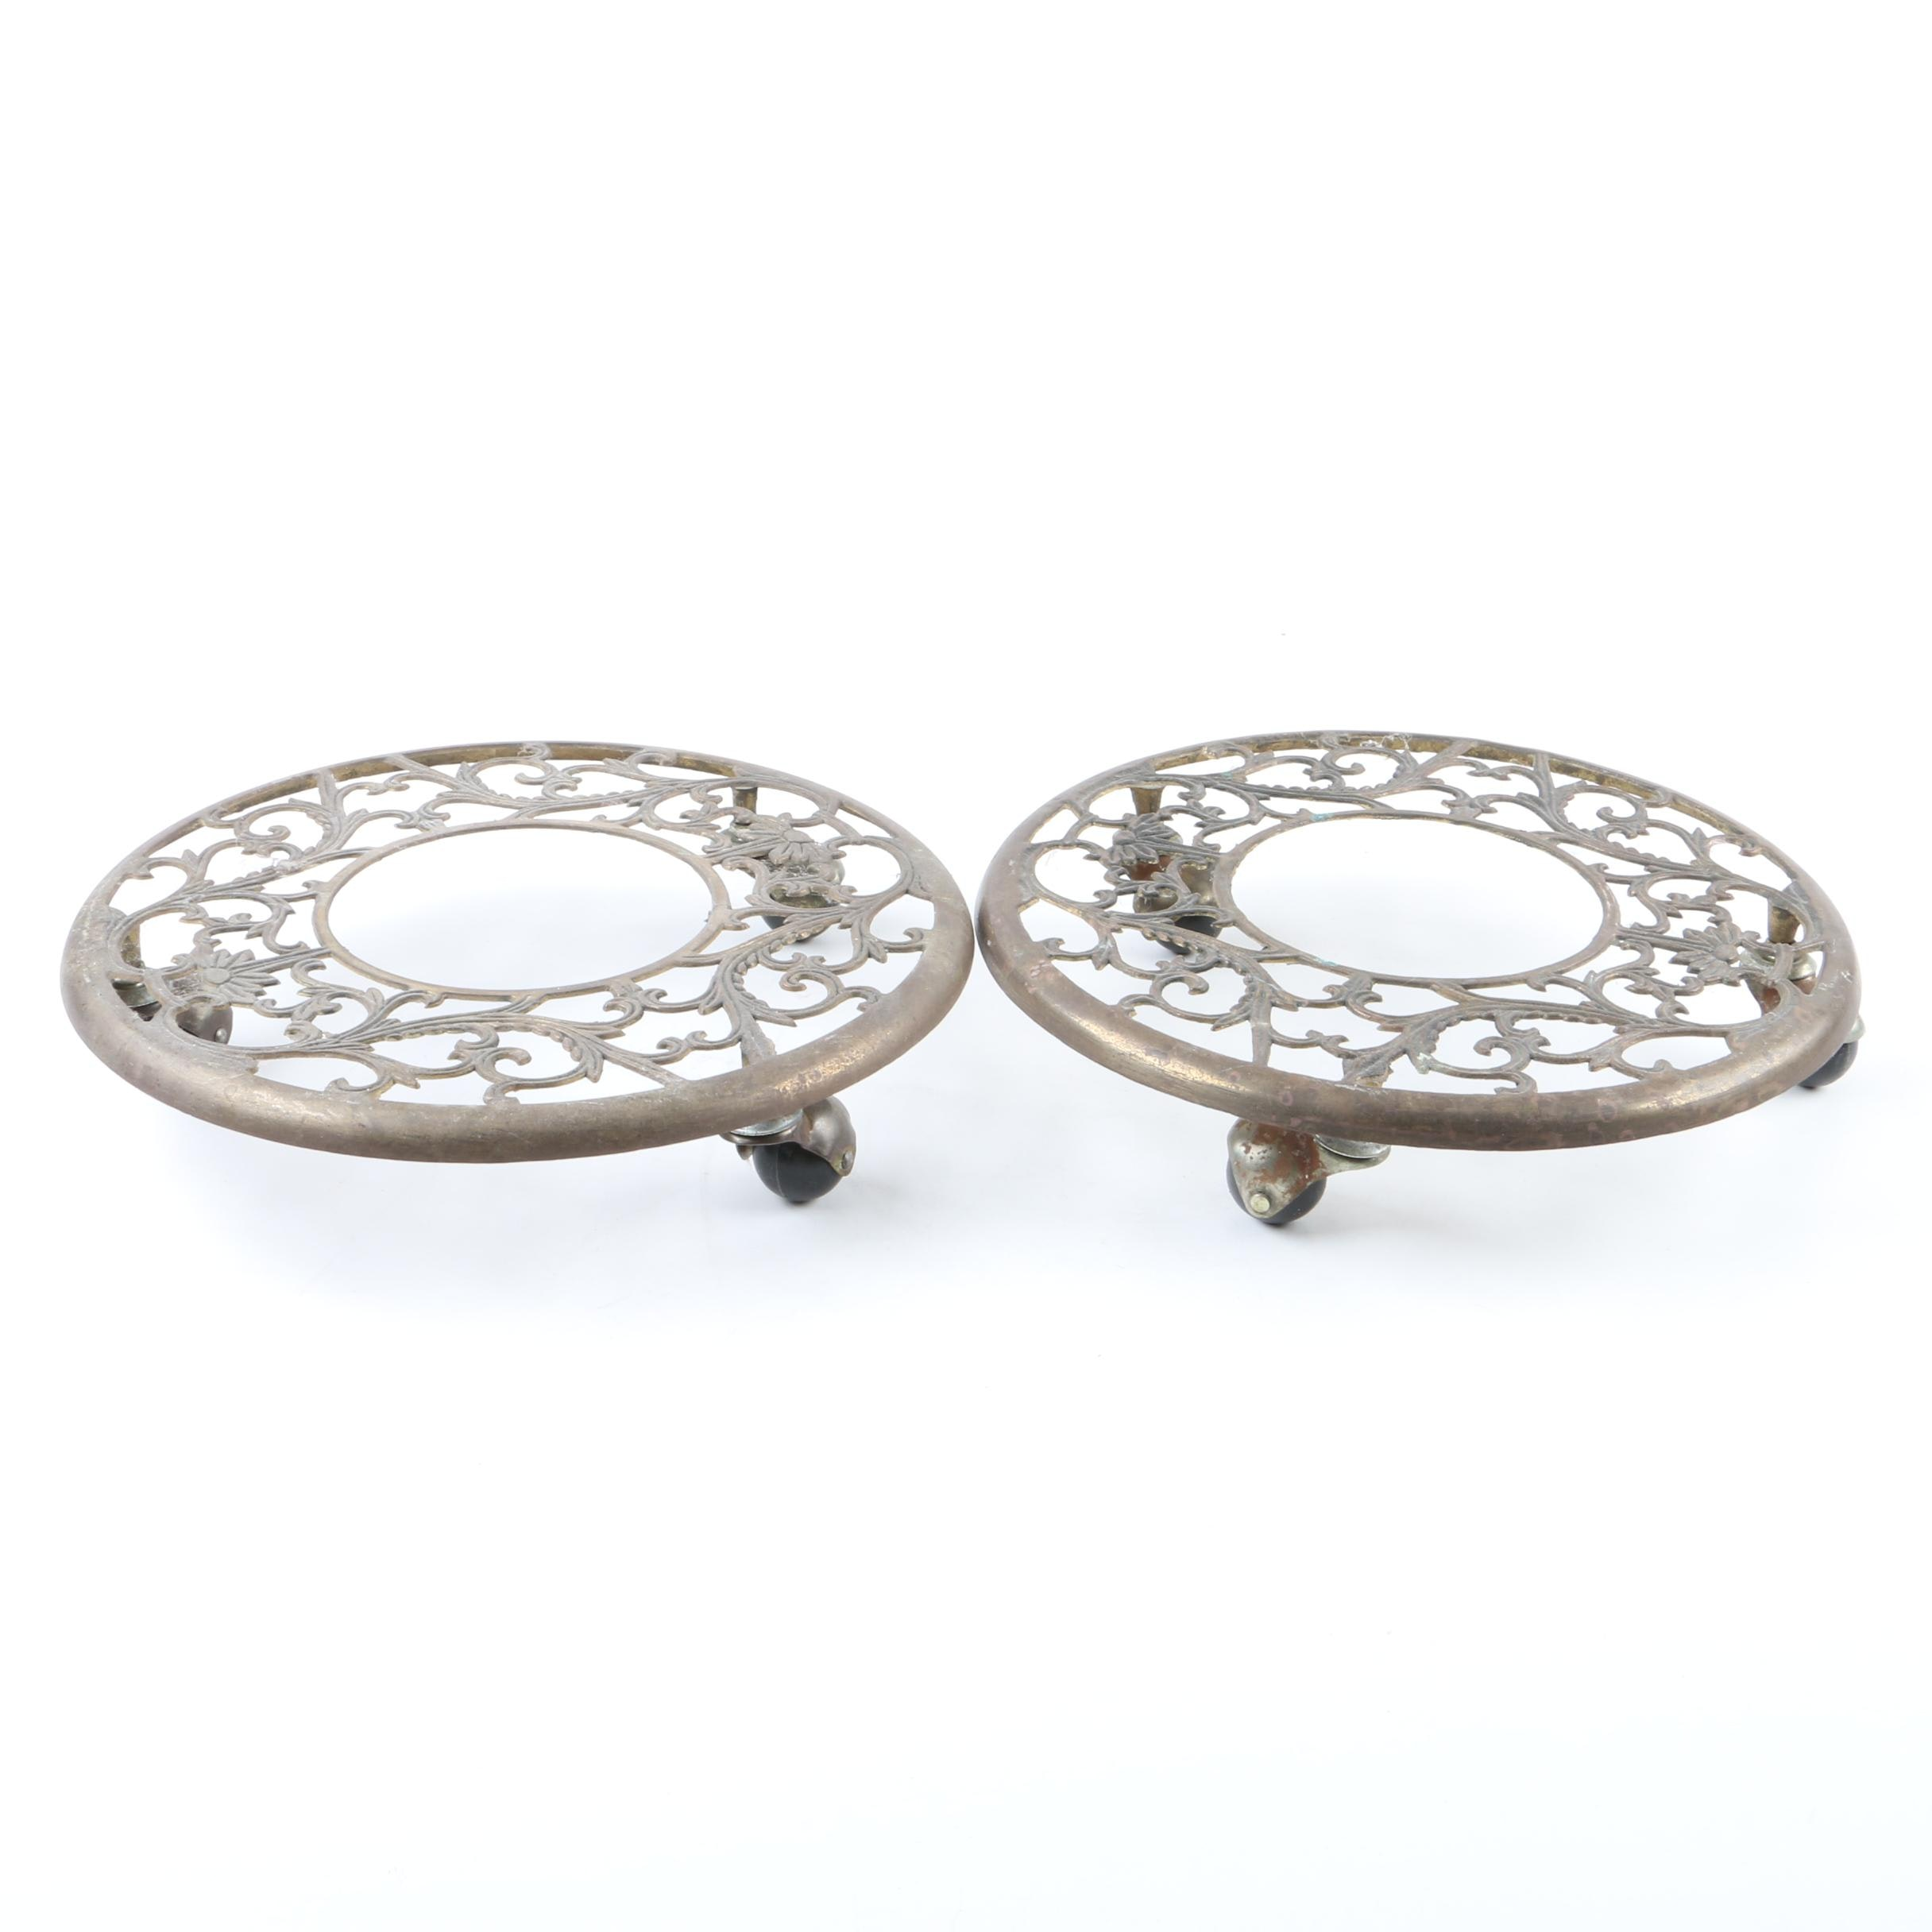 Round Open Metalwork Rolling Planter Stands